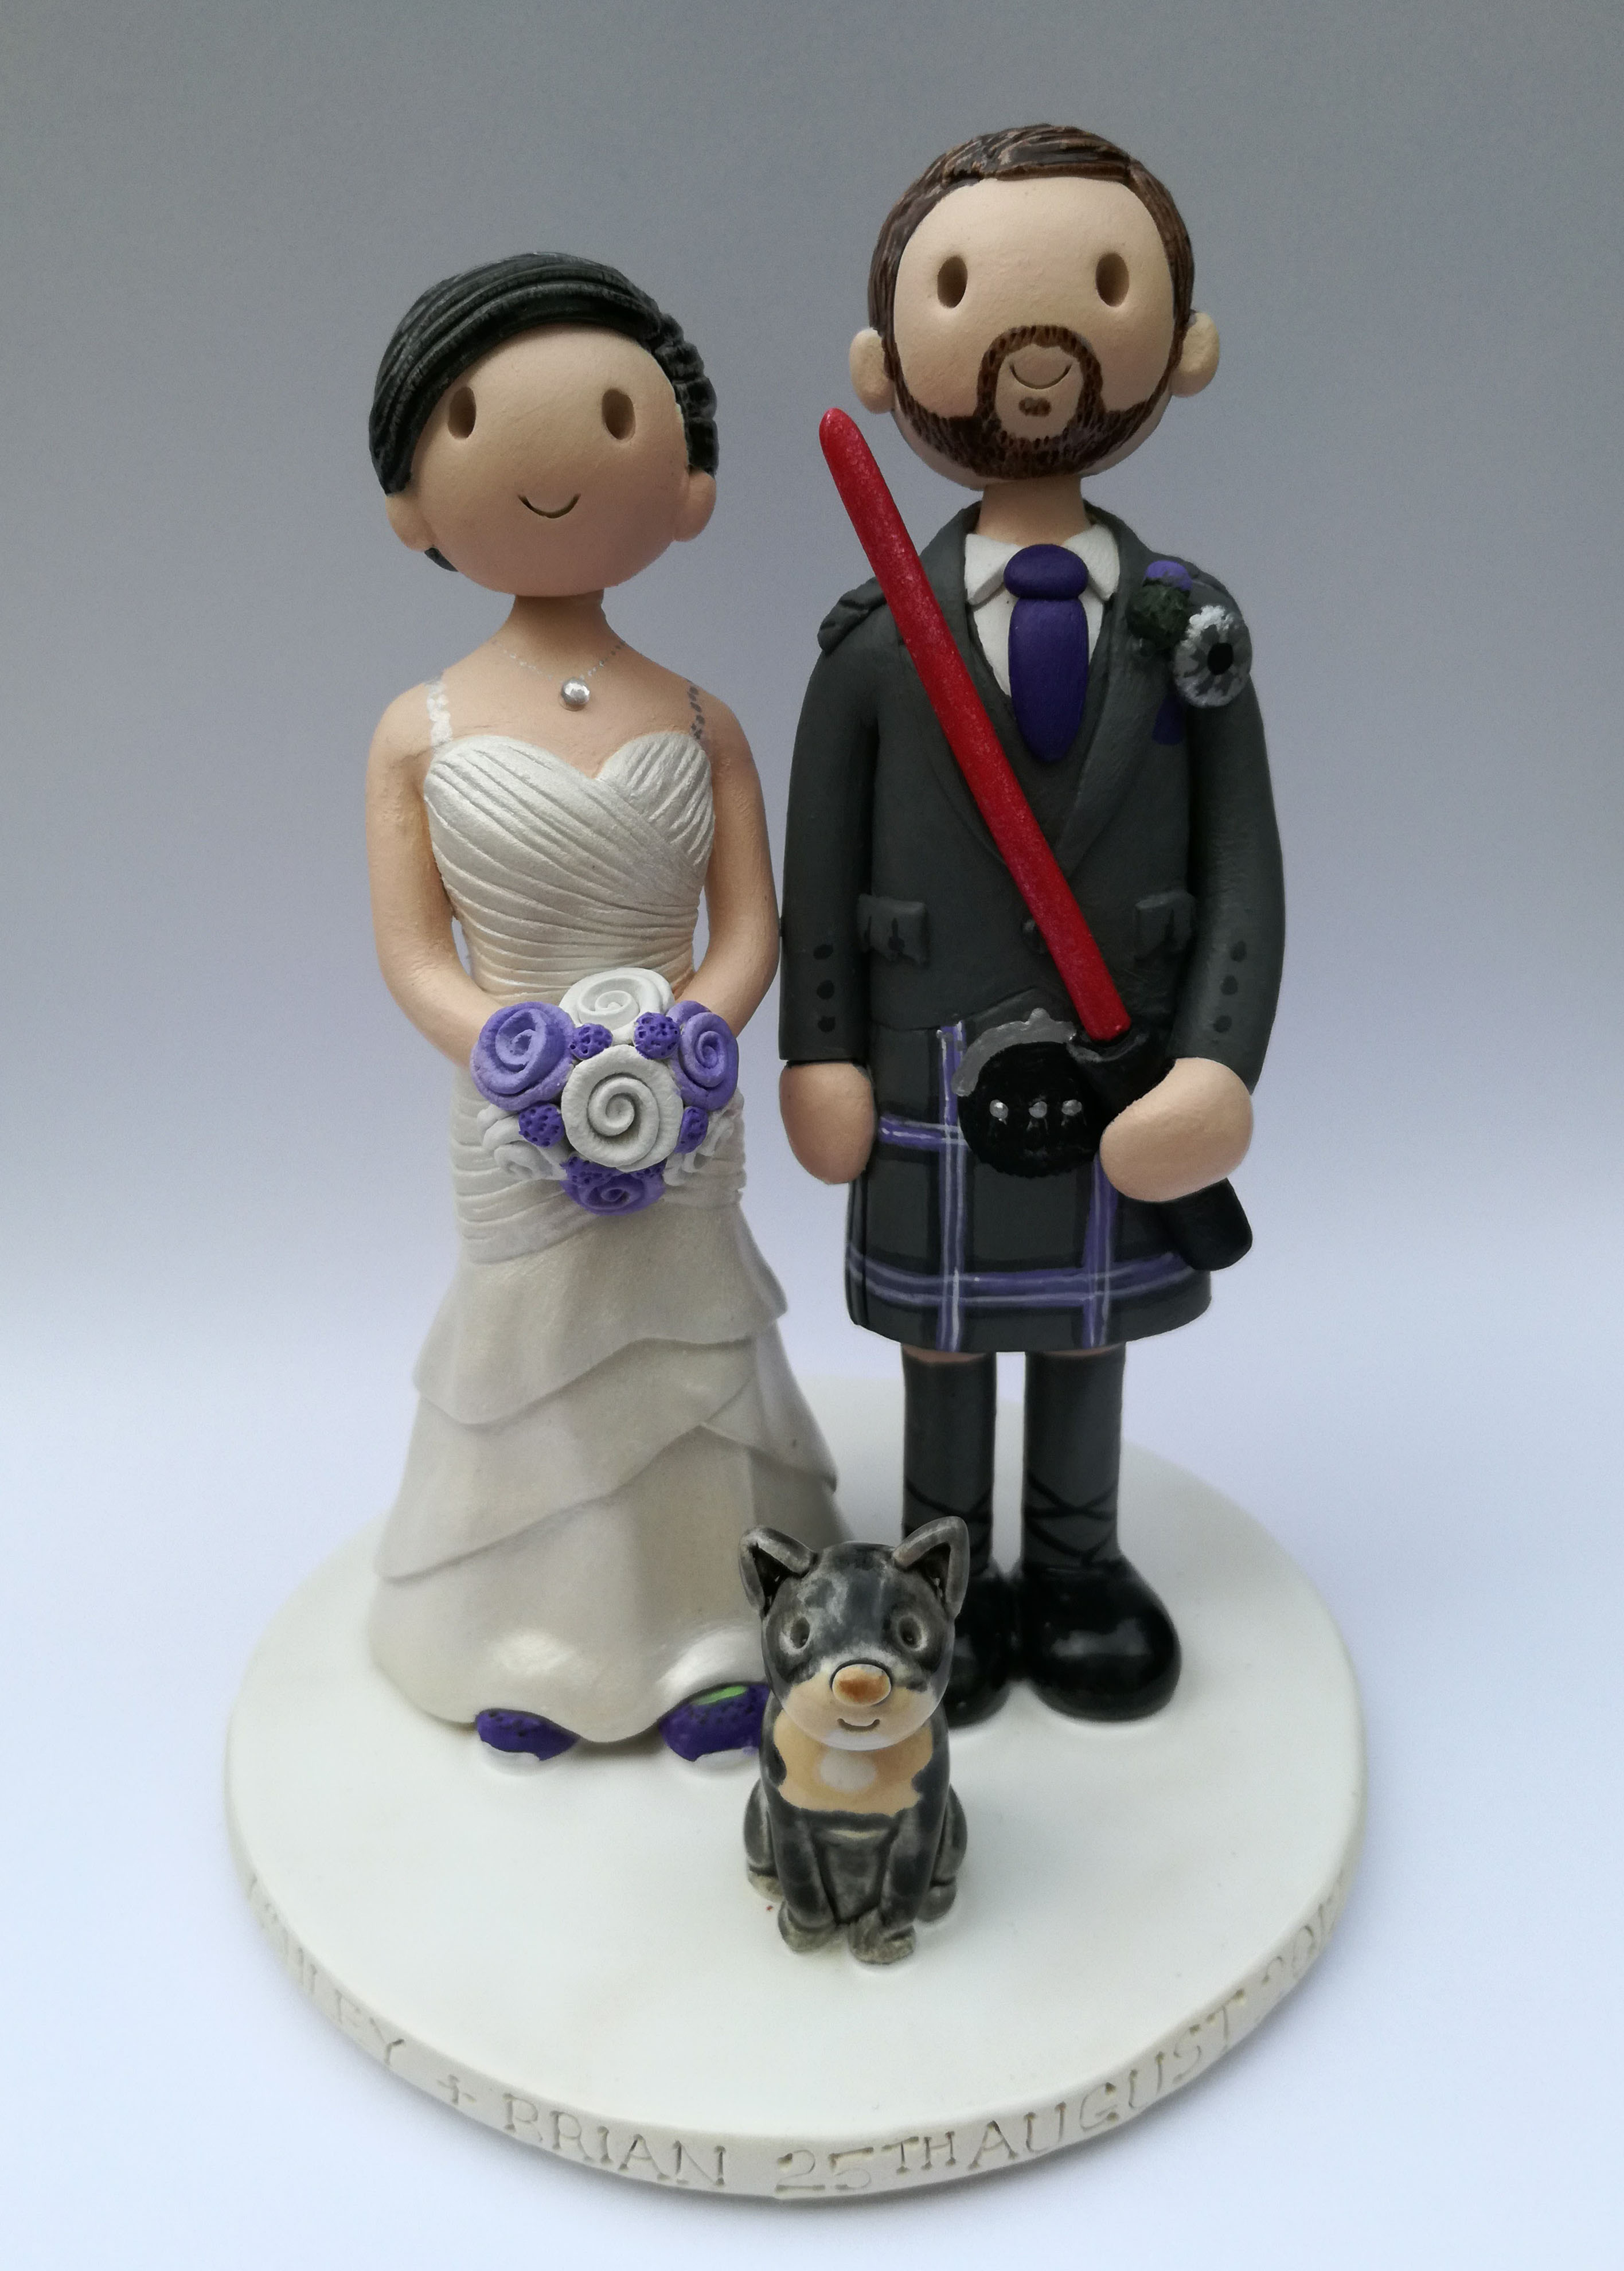 What Do You Call The Cake Topper On Wedding Cake